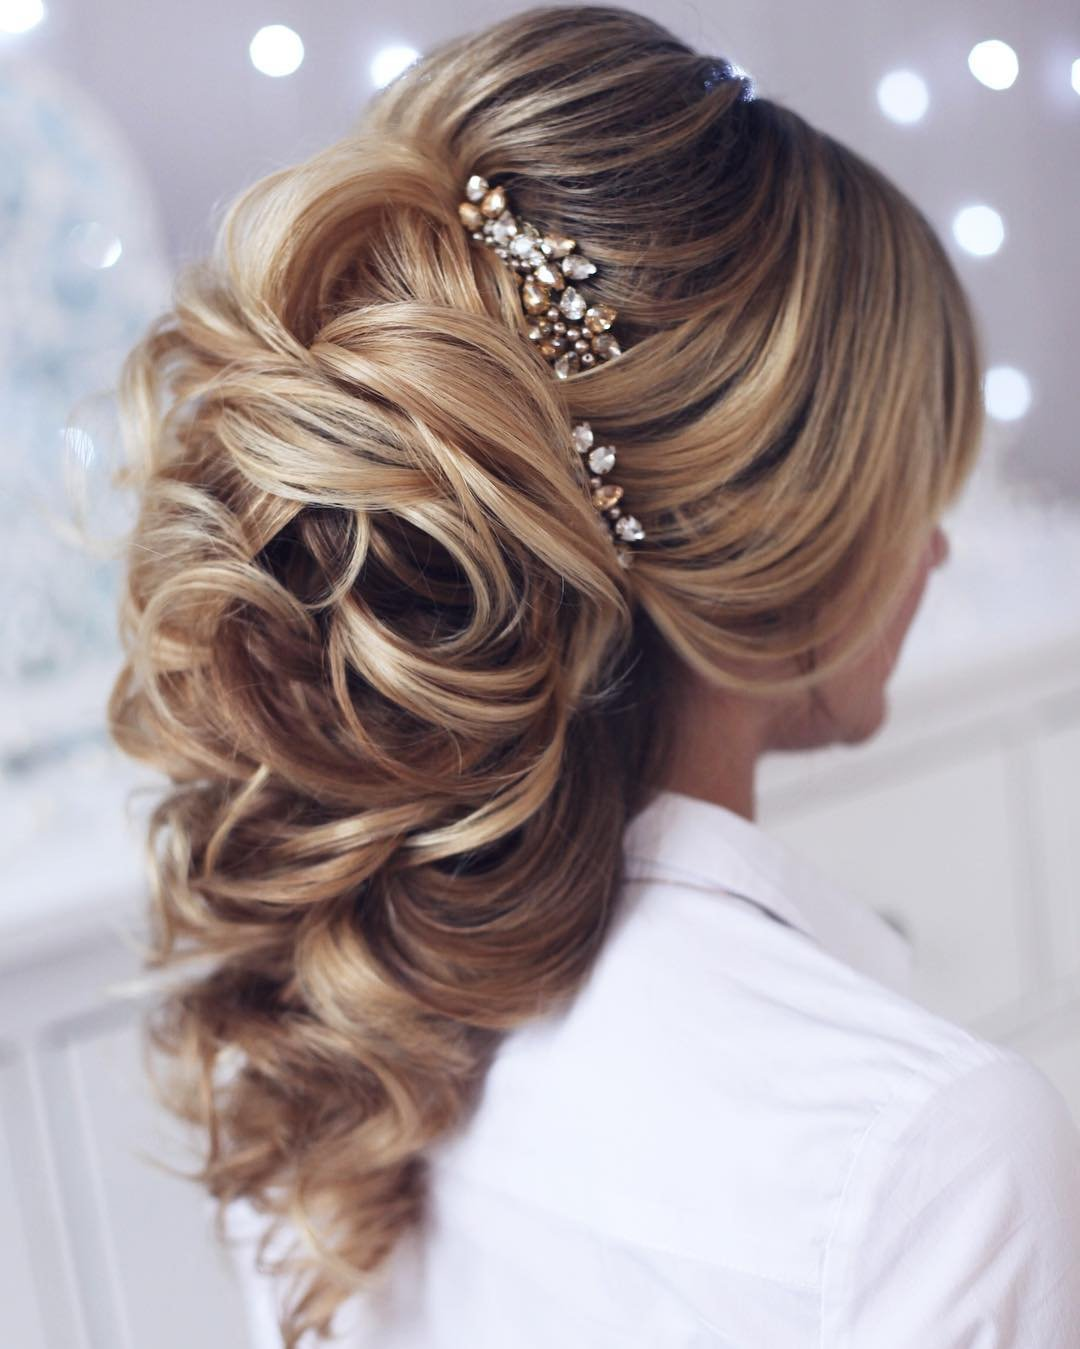 The Latest Trends Hair Accessories for Brides